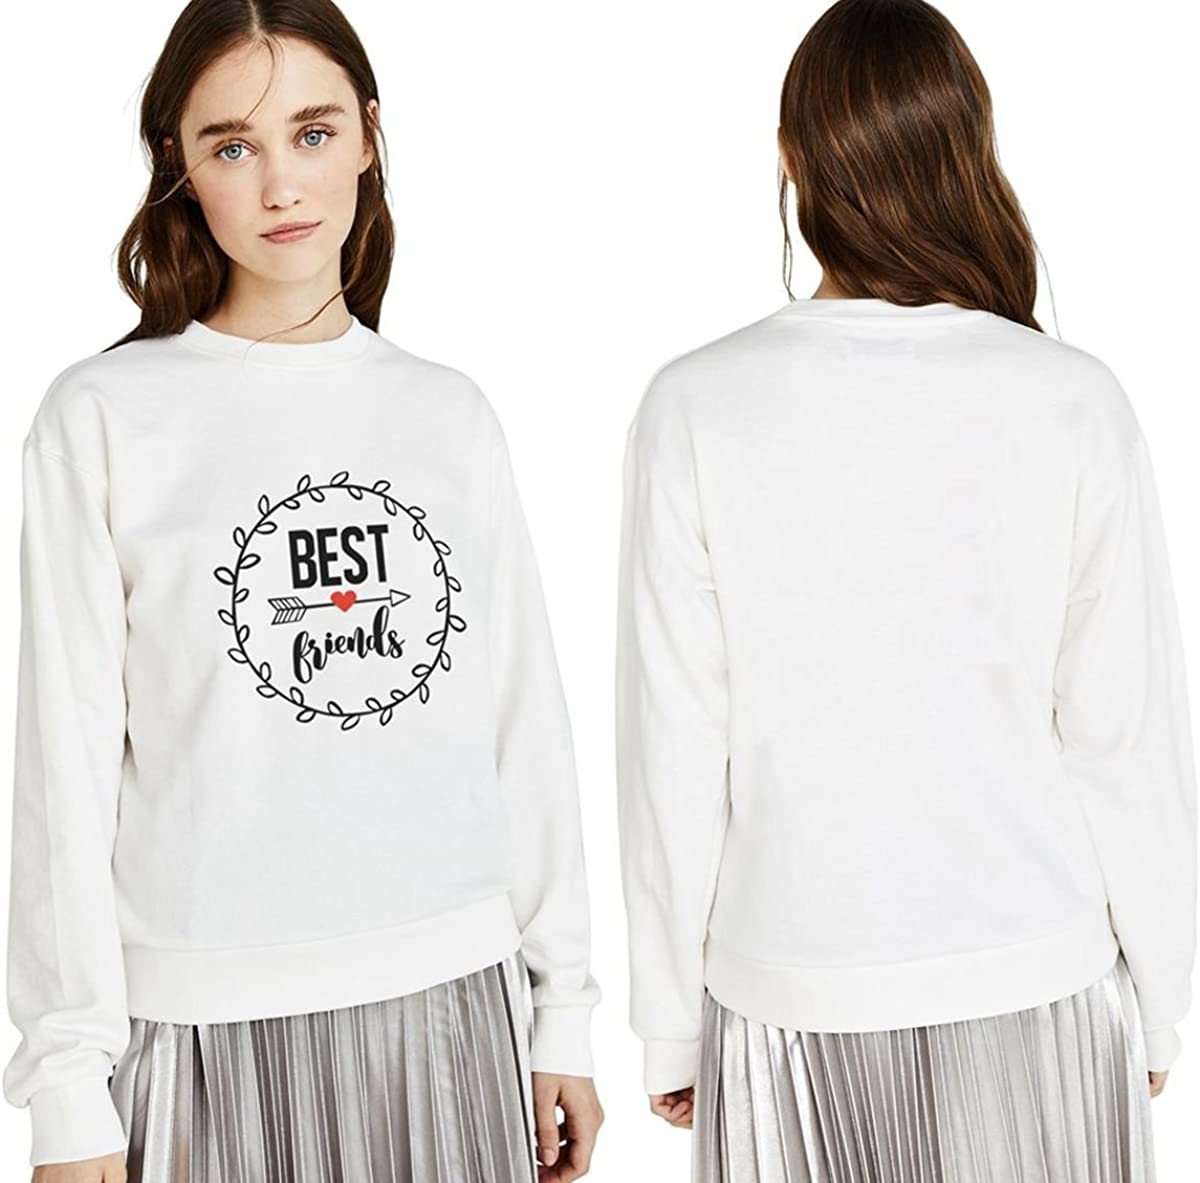 Best Friends Sweatshirt for Women Matching Sweater with BFF Pullover Sweaters for Teen Girls Black White Sister Gift 2 Pieces